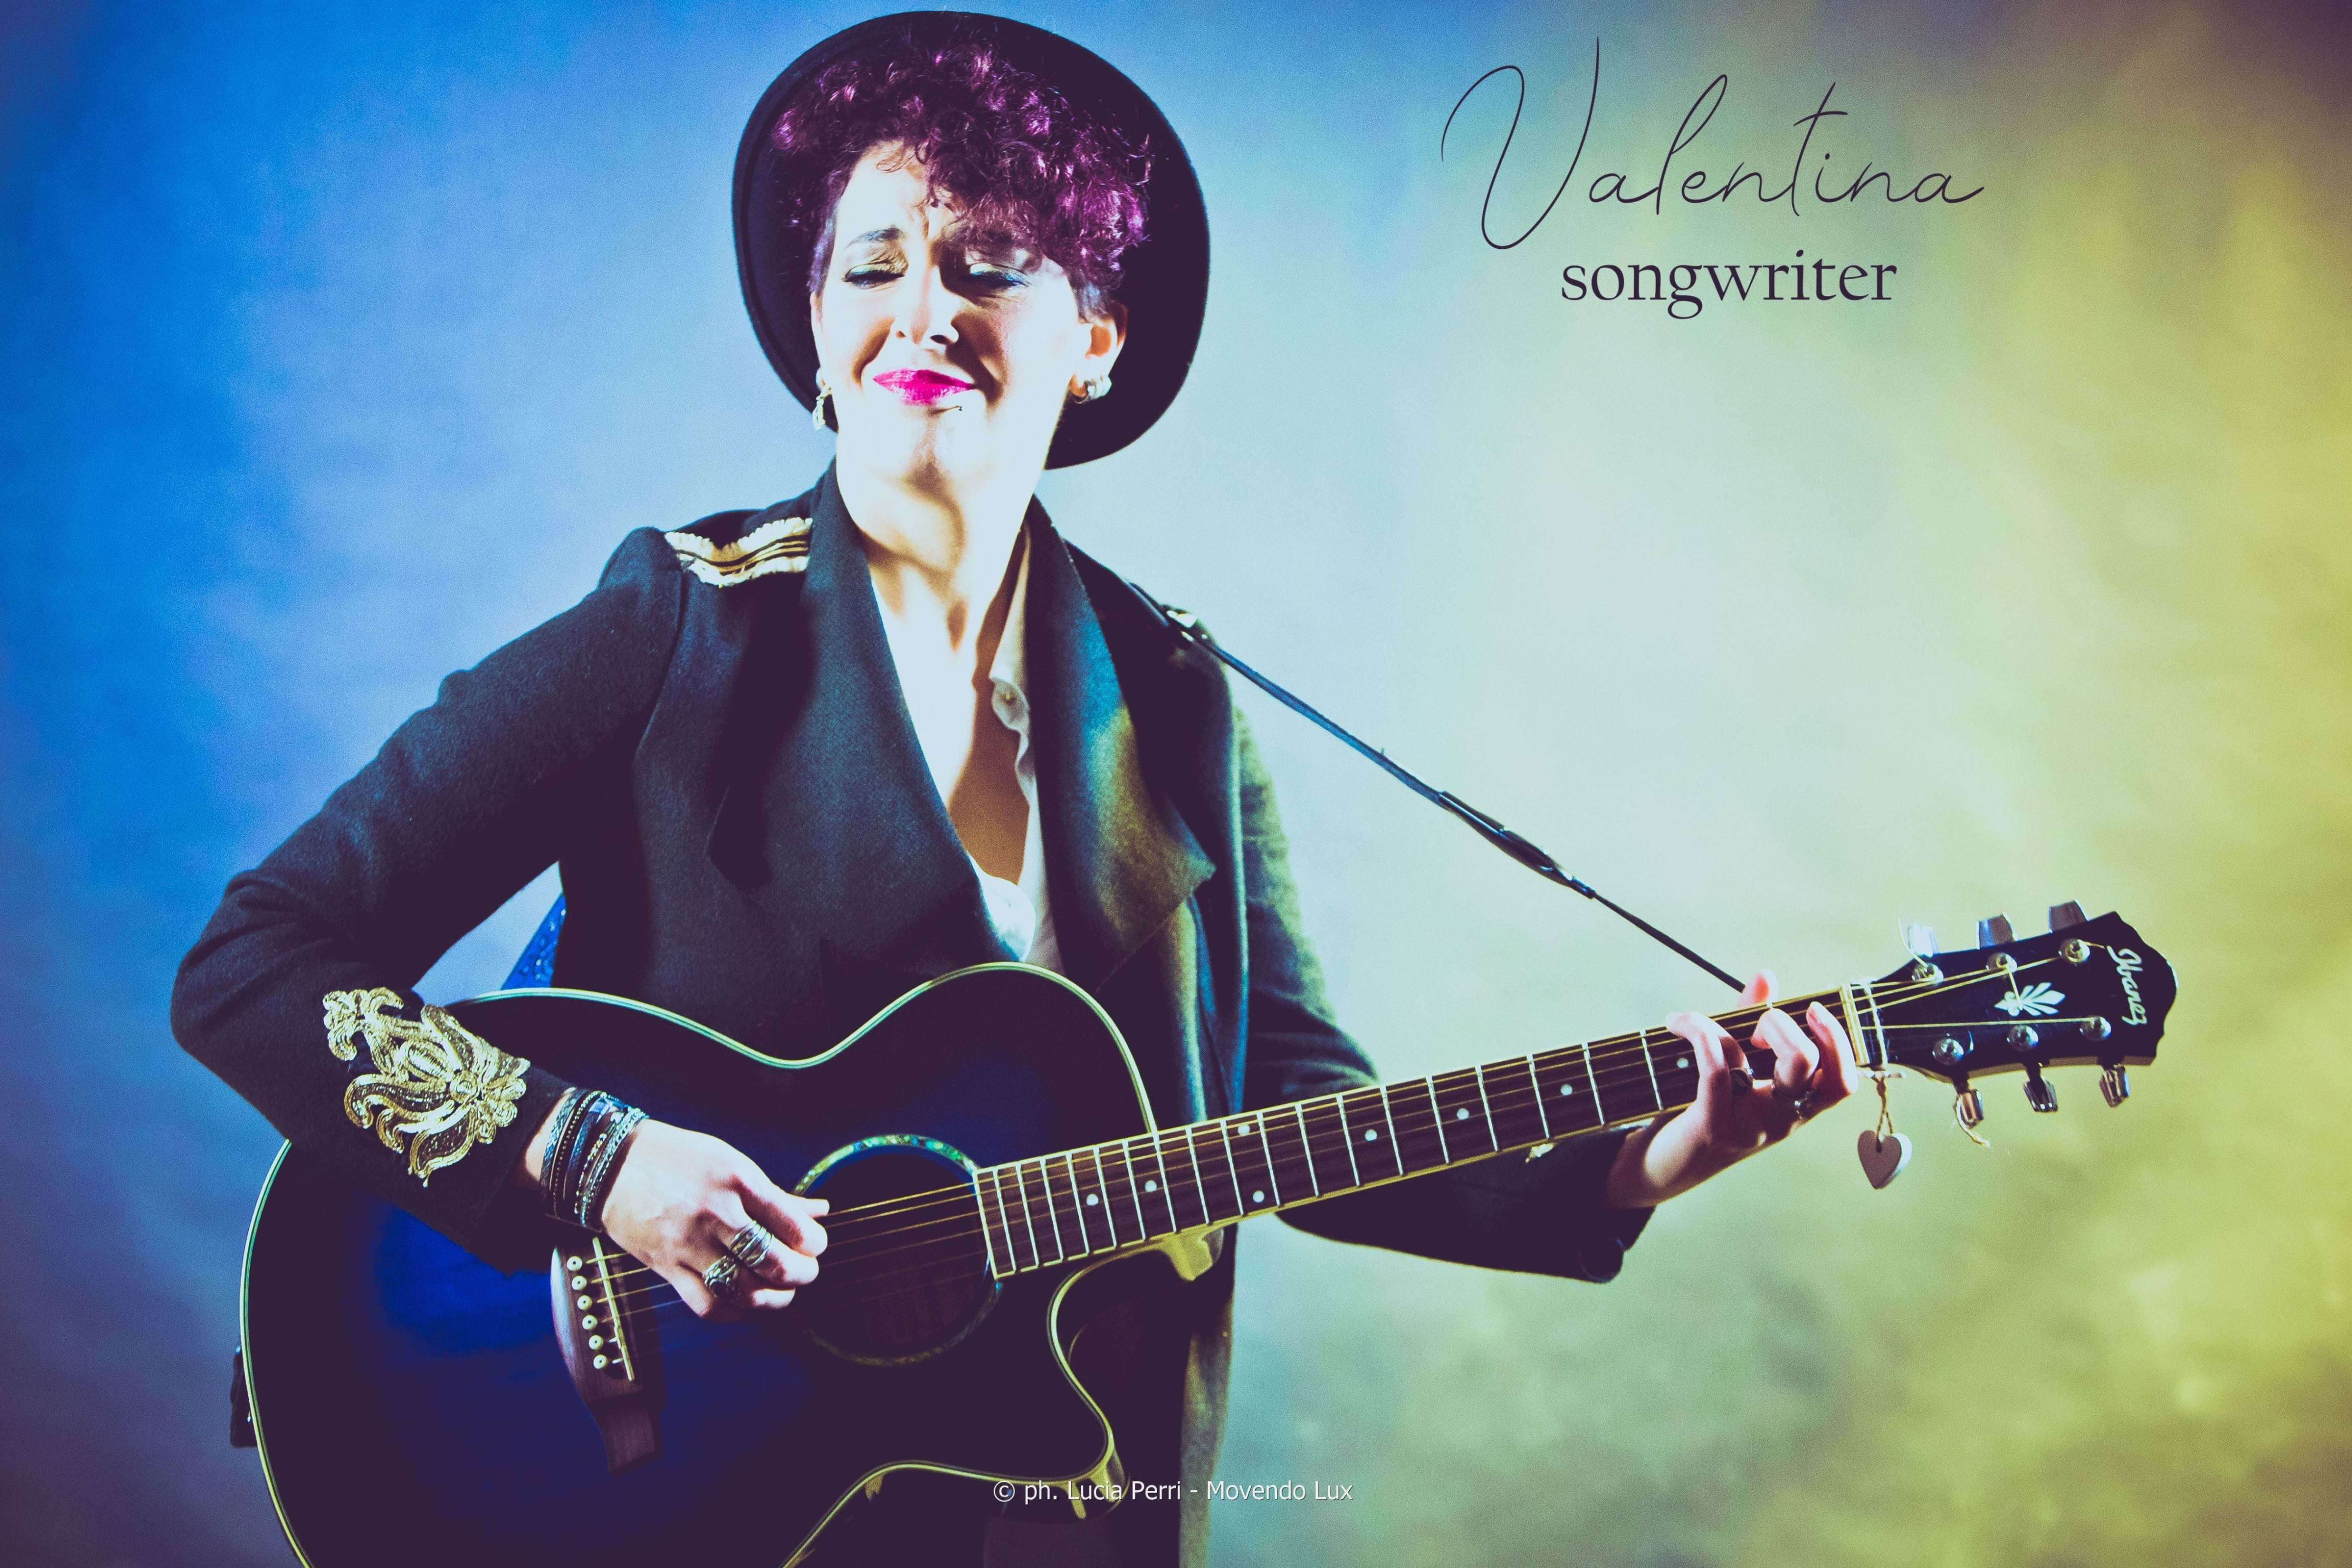 valentina-songwriter-10